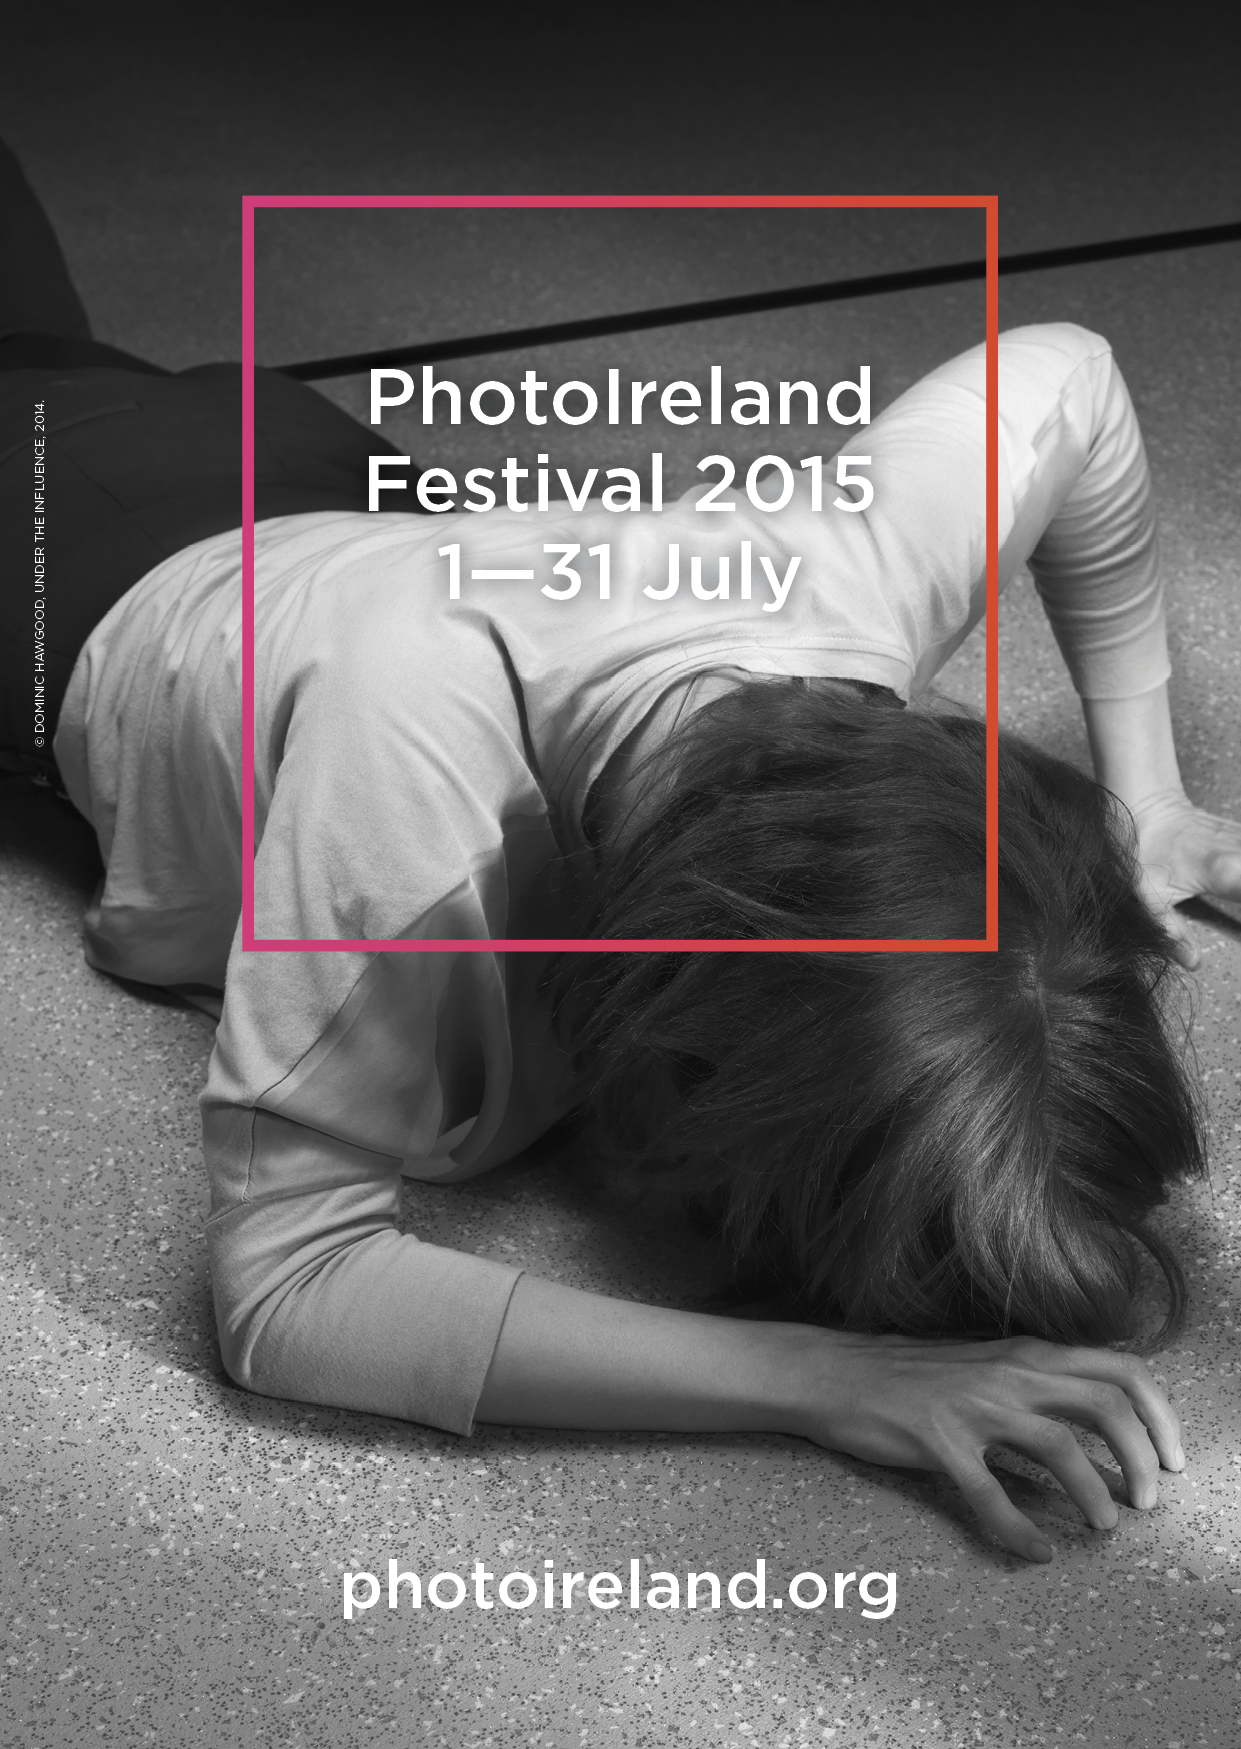 PhotoIreland Festival Opening Weekend 2-5 July